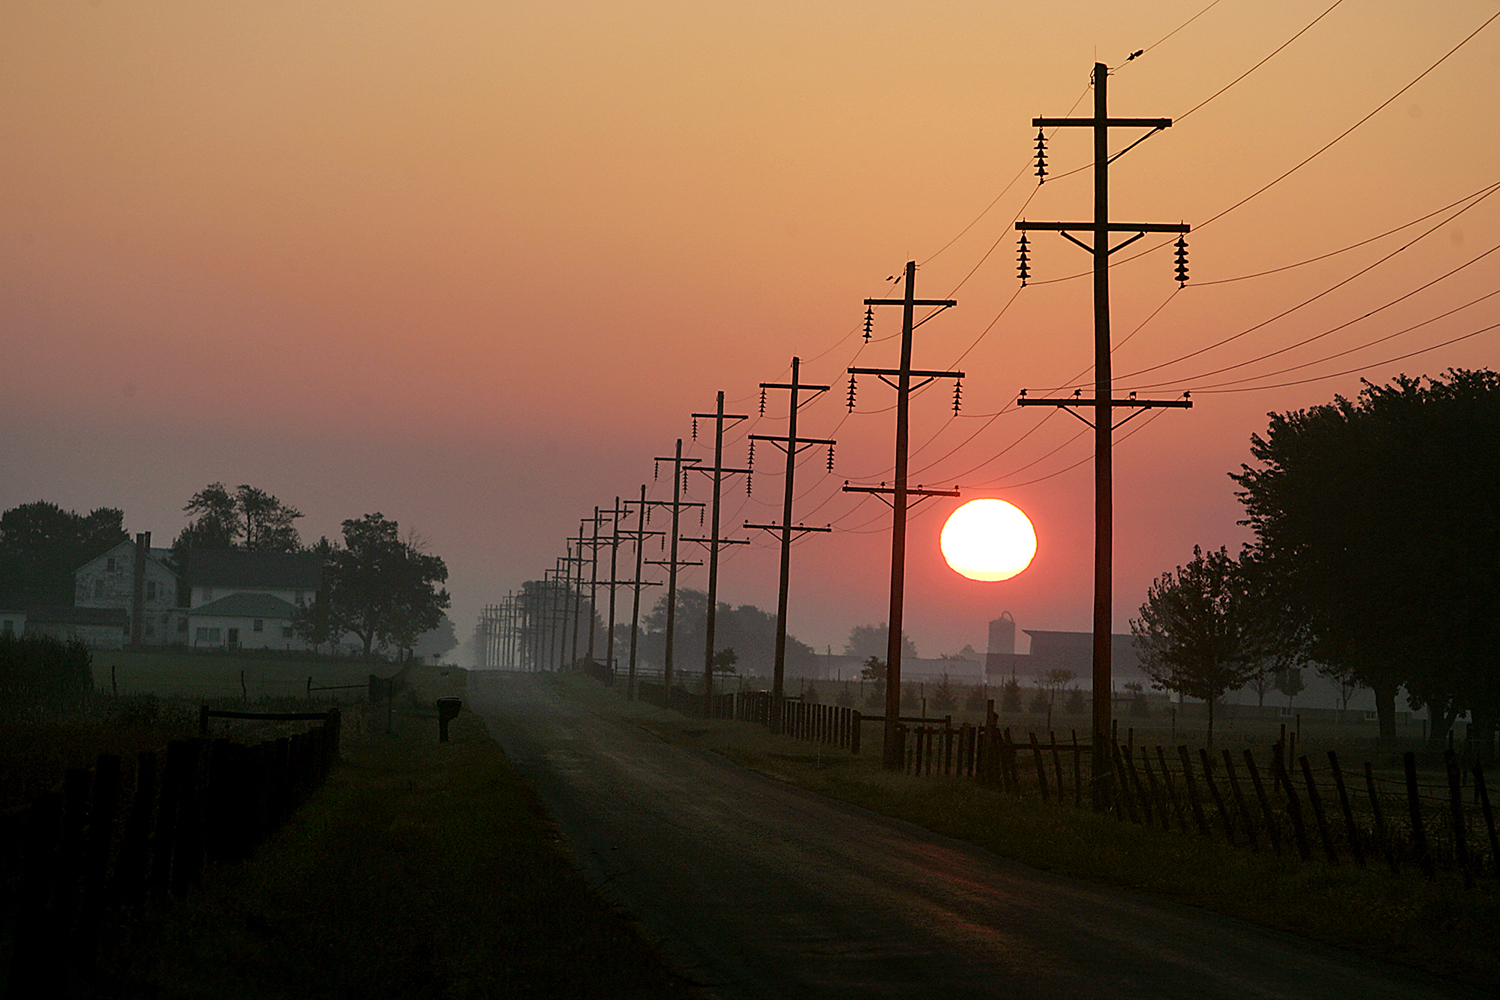 The rural town of Arthur is calm at sunrise. T.J. Salsman/The State Journal-Register